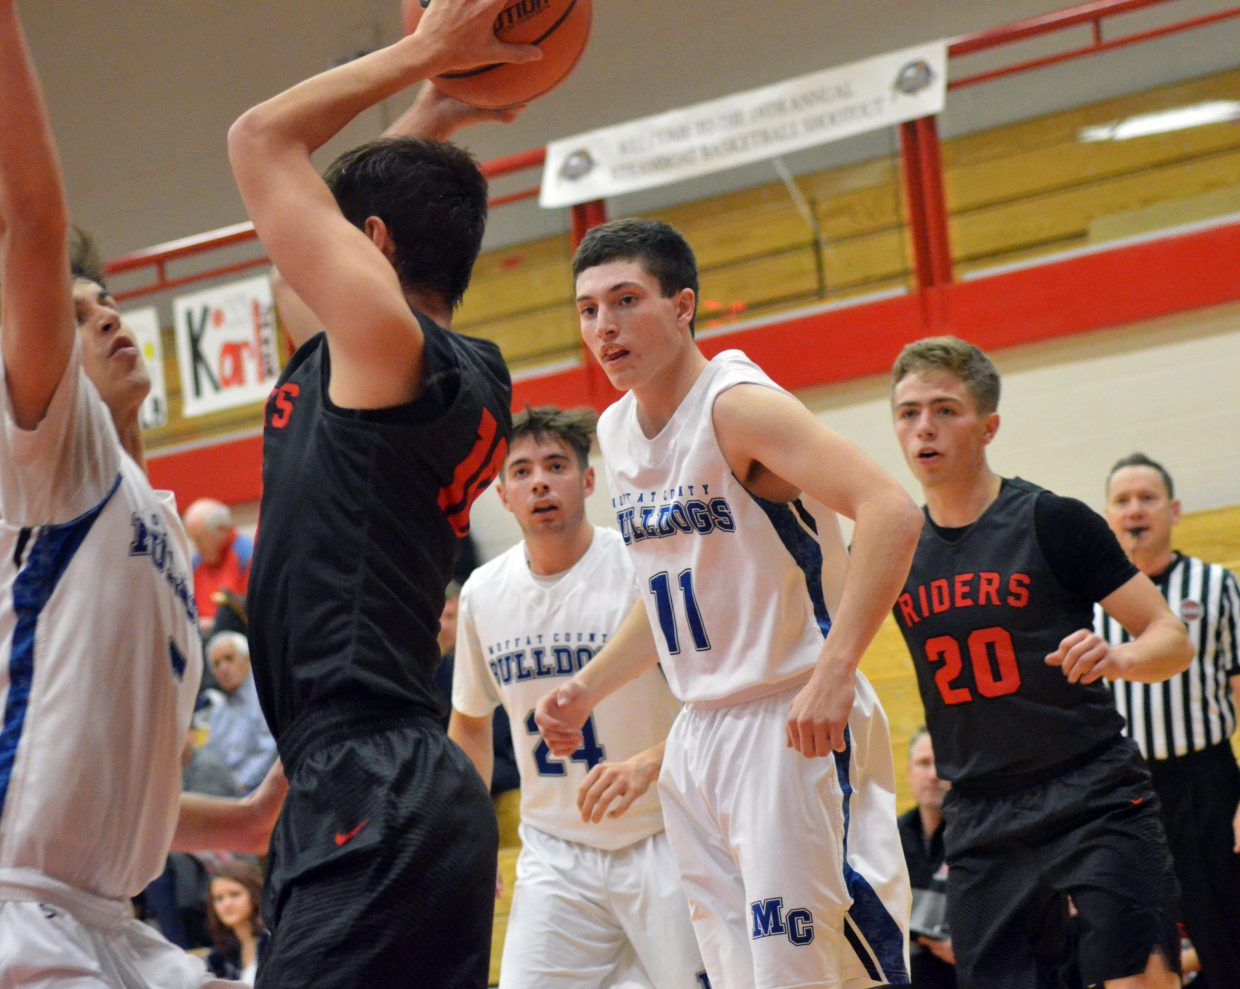 Moffat County High School's Jerod Chacon sticks close to Roosevelt's Christopher Podtburg as teammates Brent Cook and Connor Murphy stay alert during the Steamboat Springs Shoot-Out. MCHS boys lost 78-43 to the Rough Riders.